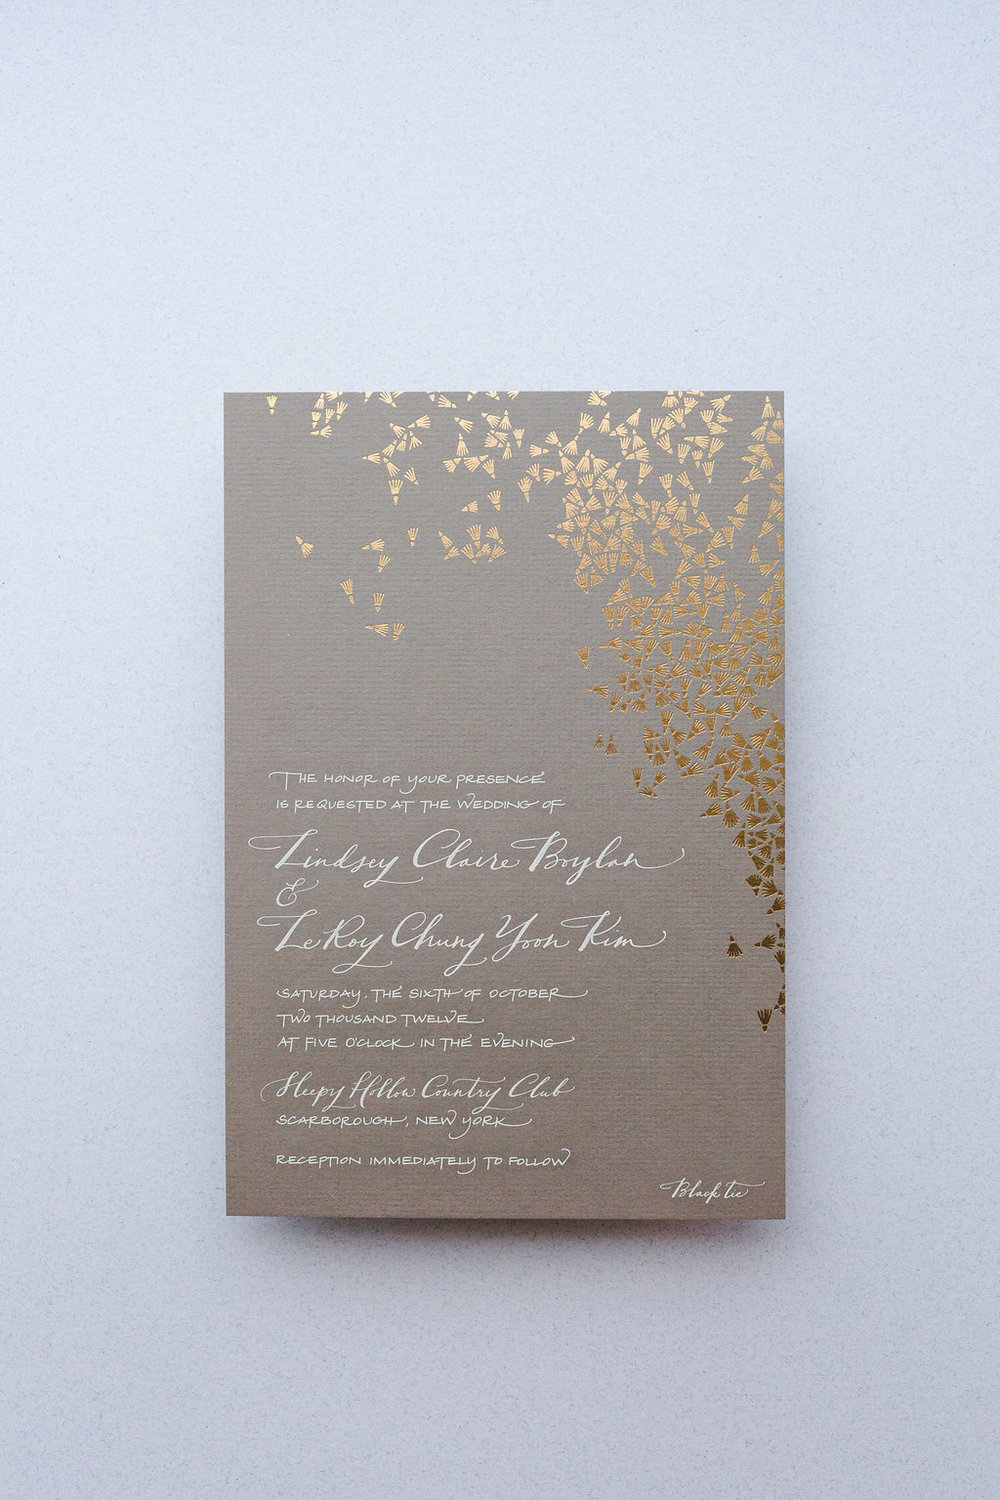 paperfinger-invitation-ivoryengraving.jpg